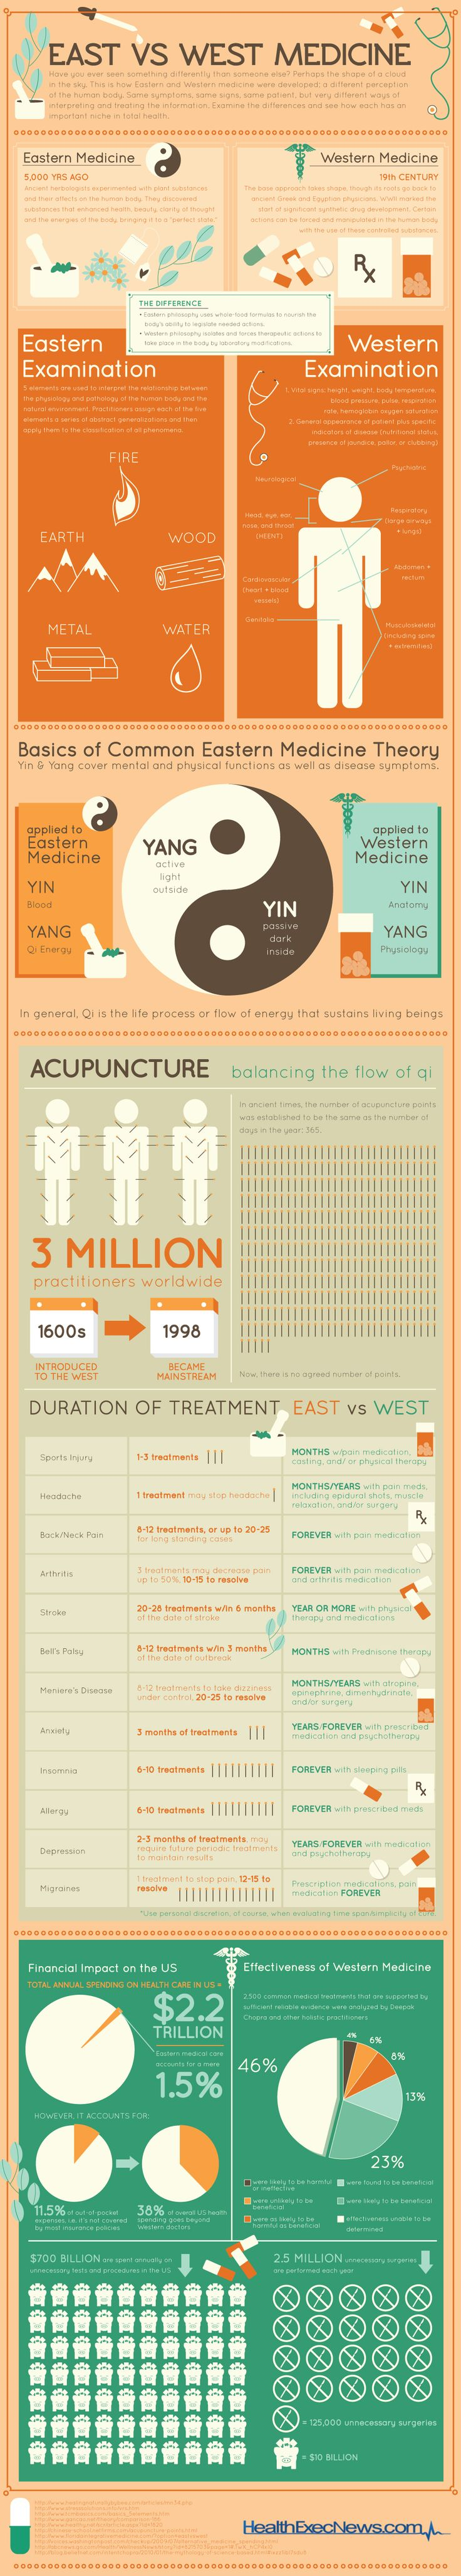 East vs West Medicine- The East and West have been looking at medicine from different angles for years. Eastern and Western medicine had different perceptions of the human body and treated health issues differently. This infographic by Health Exec News shows some of the differences between the eastern and western medicine philosophies: #infographic